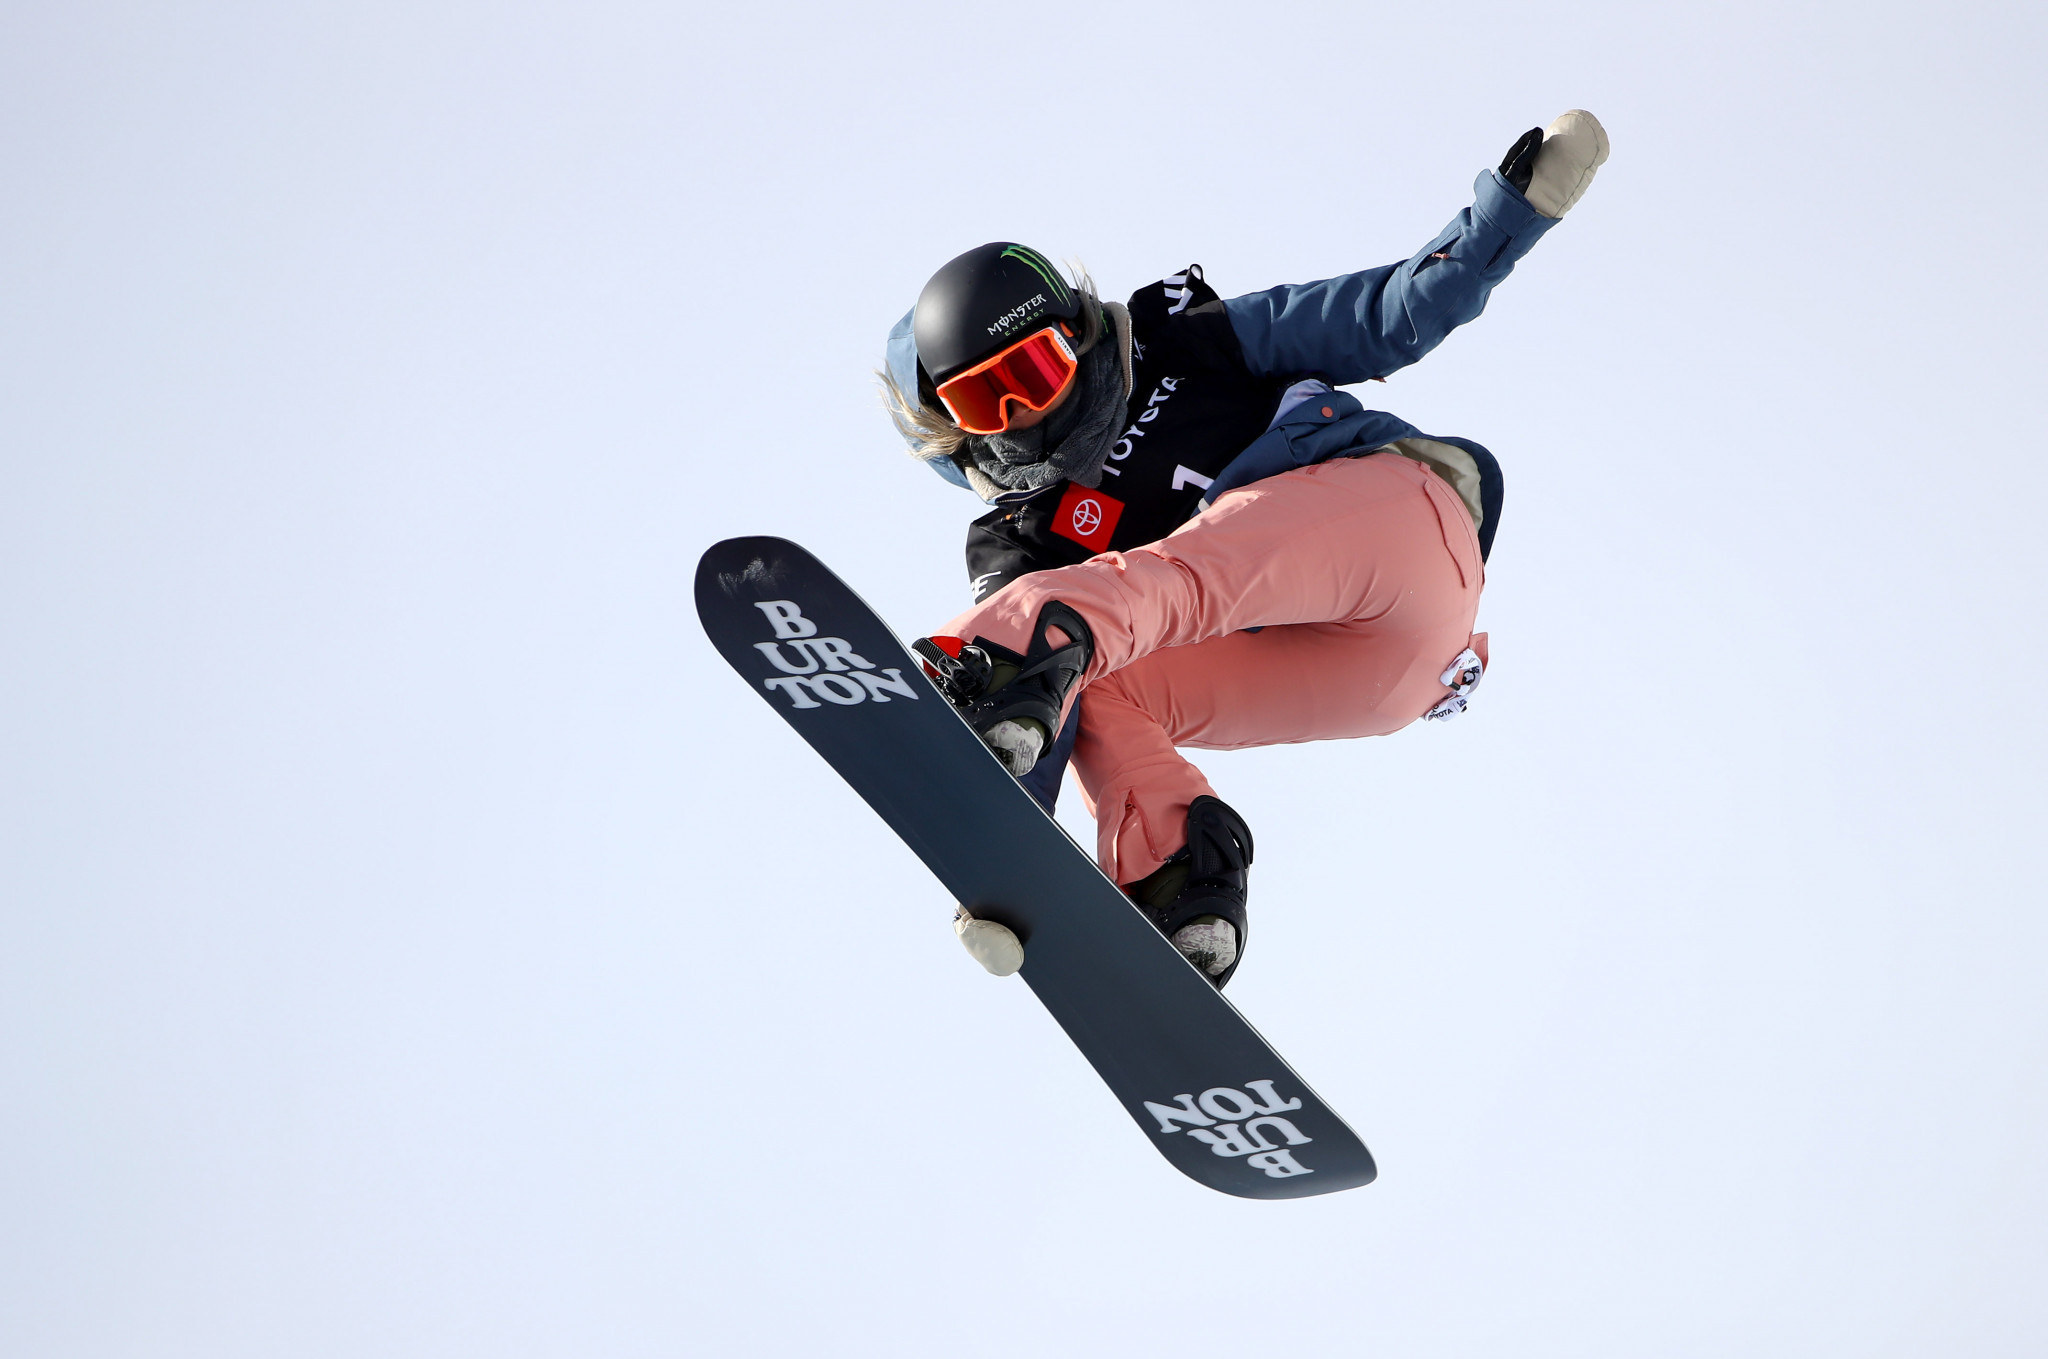 Kim tops women's halfpipe semi-final standings as Olympic champion makes Snowboard World Cup return